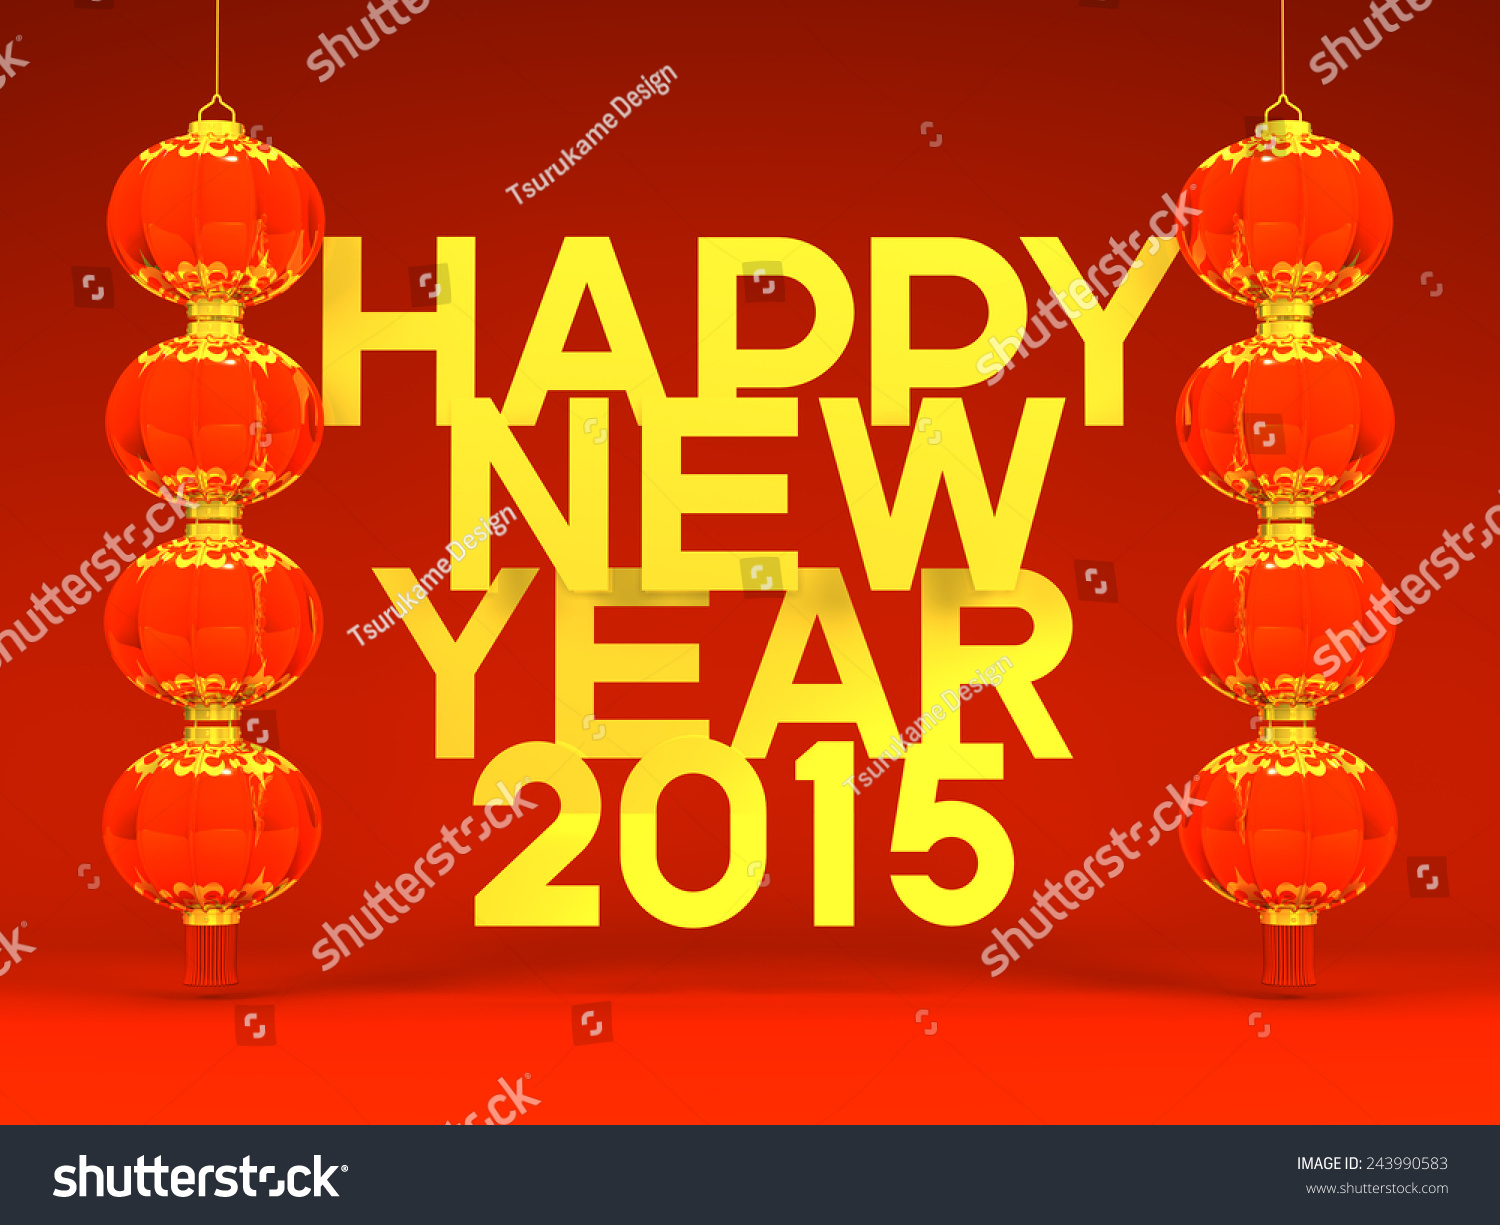 Lunar new years lanterns 2015 greeting stock illustration 243990583 lunar new years lanterns 2015 greeting on red background 3d render illustration for new kristyandbryce Choice Image